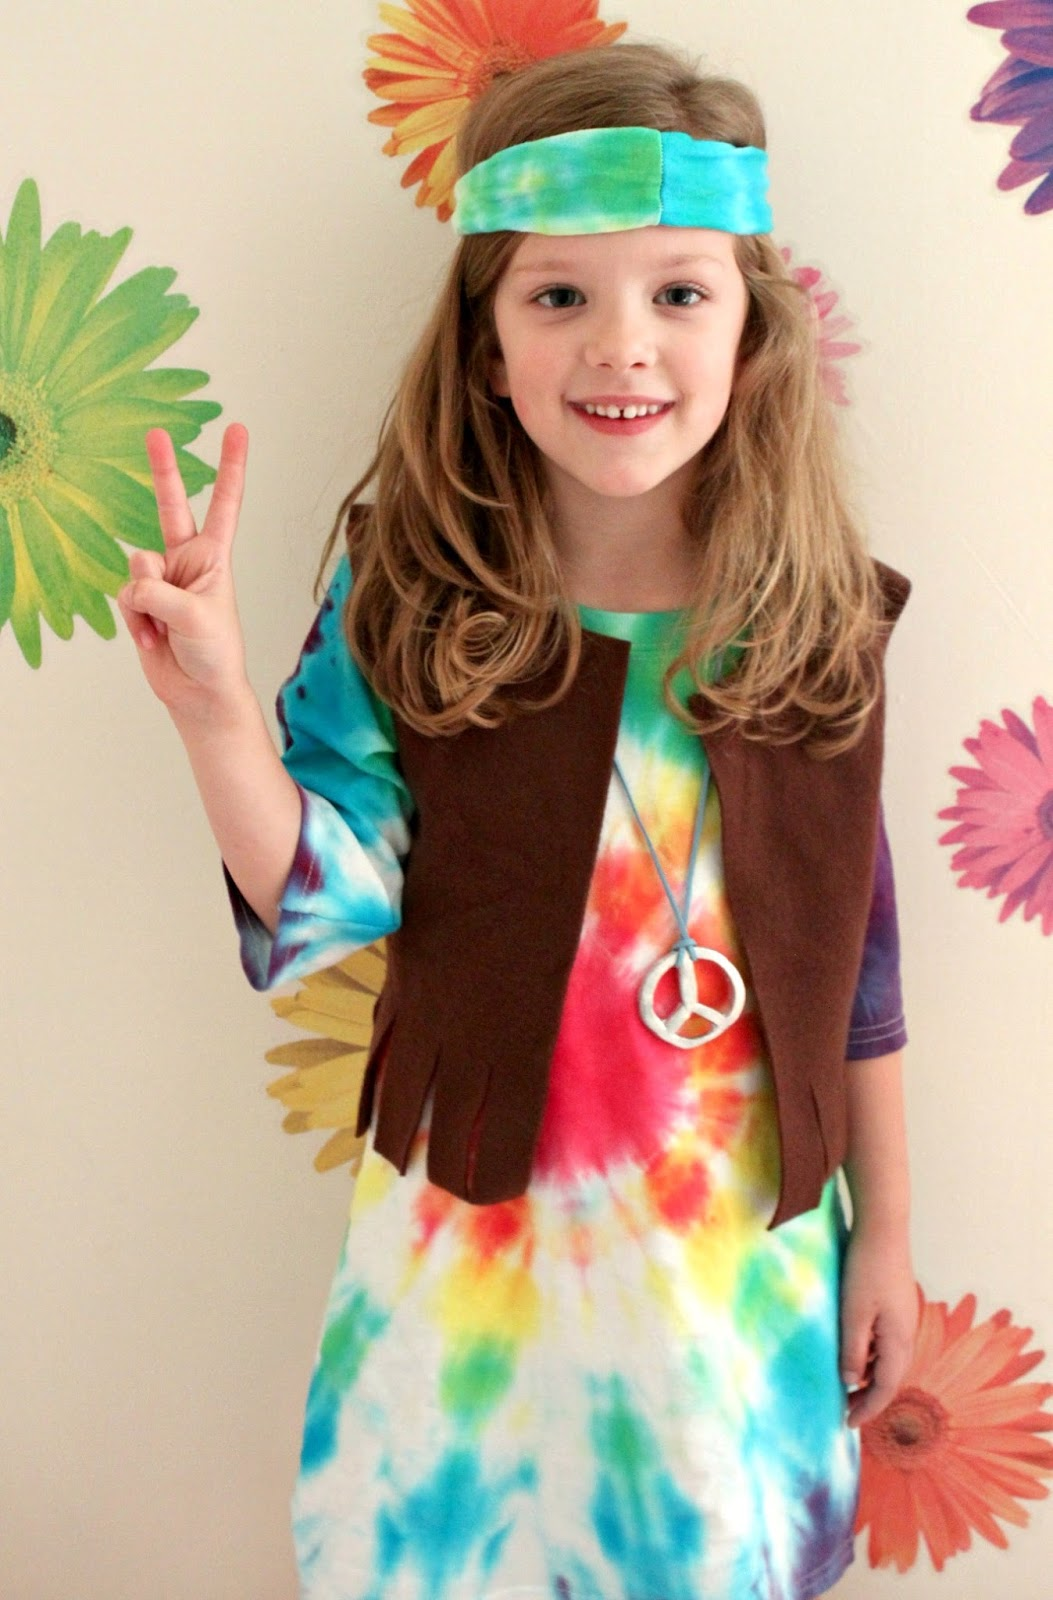 We Hope You Have Fun Making Your Own Hippie Costumes Too If Re Still Stumped On What To Make Can Also Check Out Michael S Market For